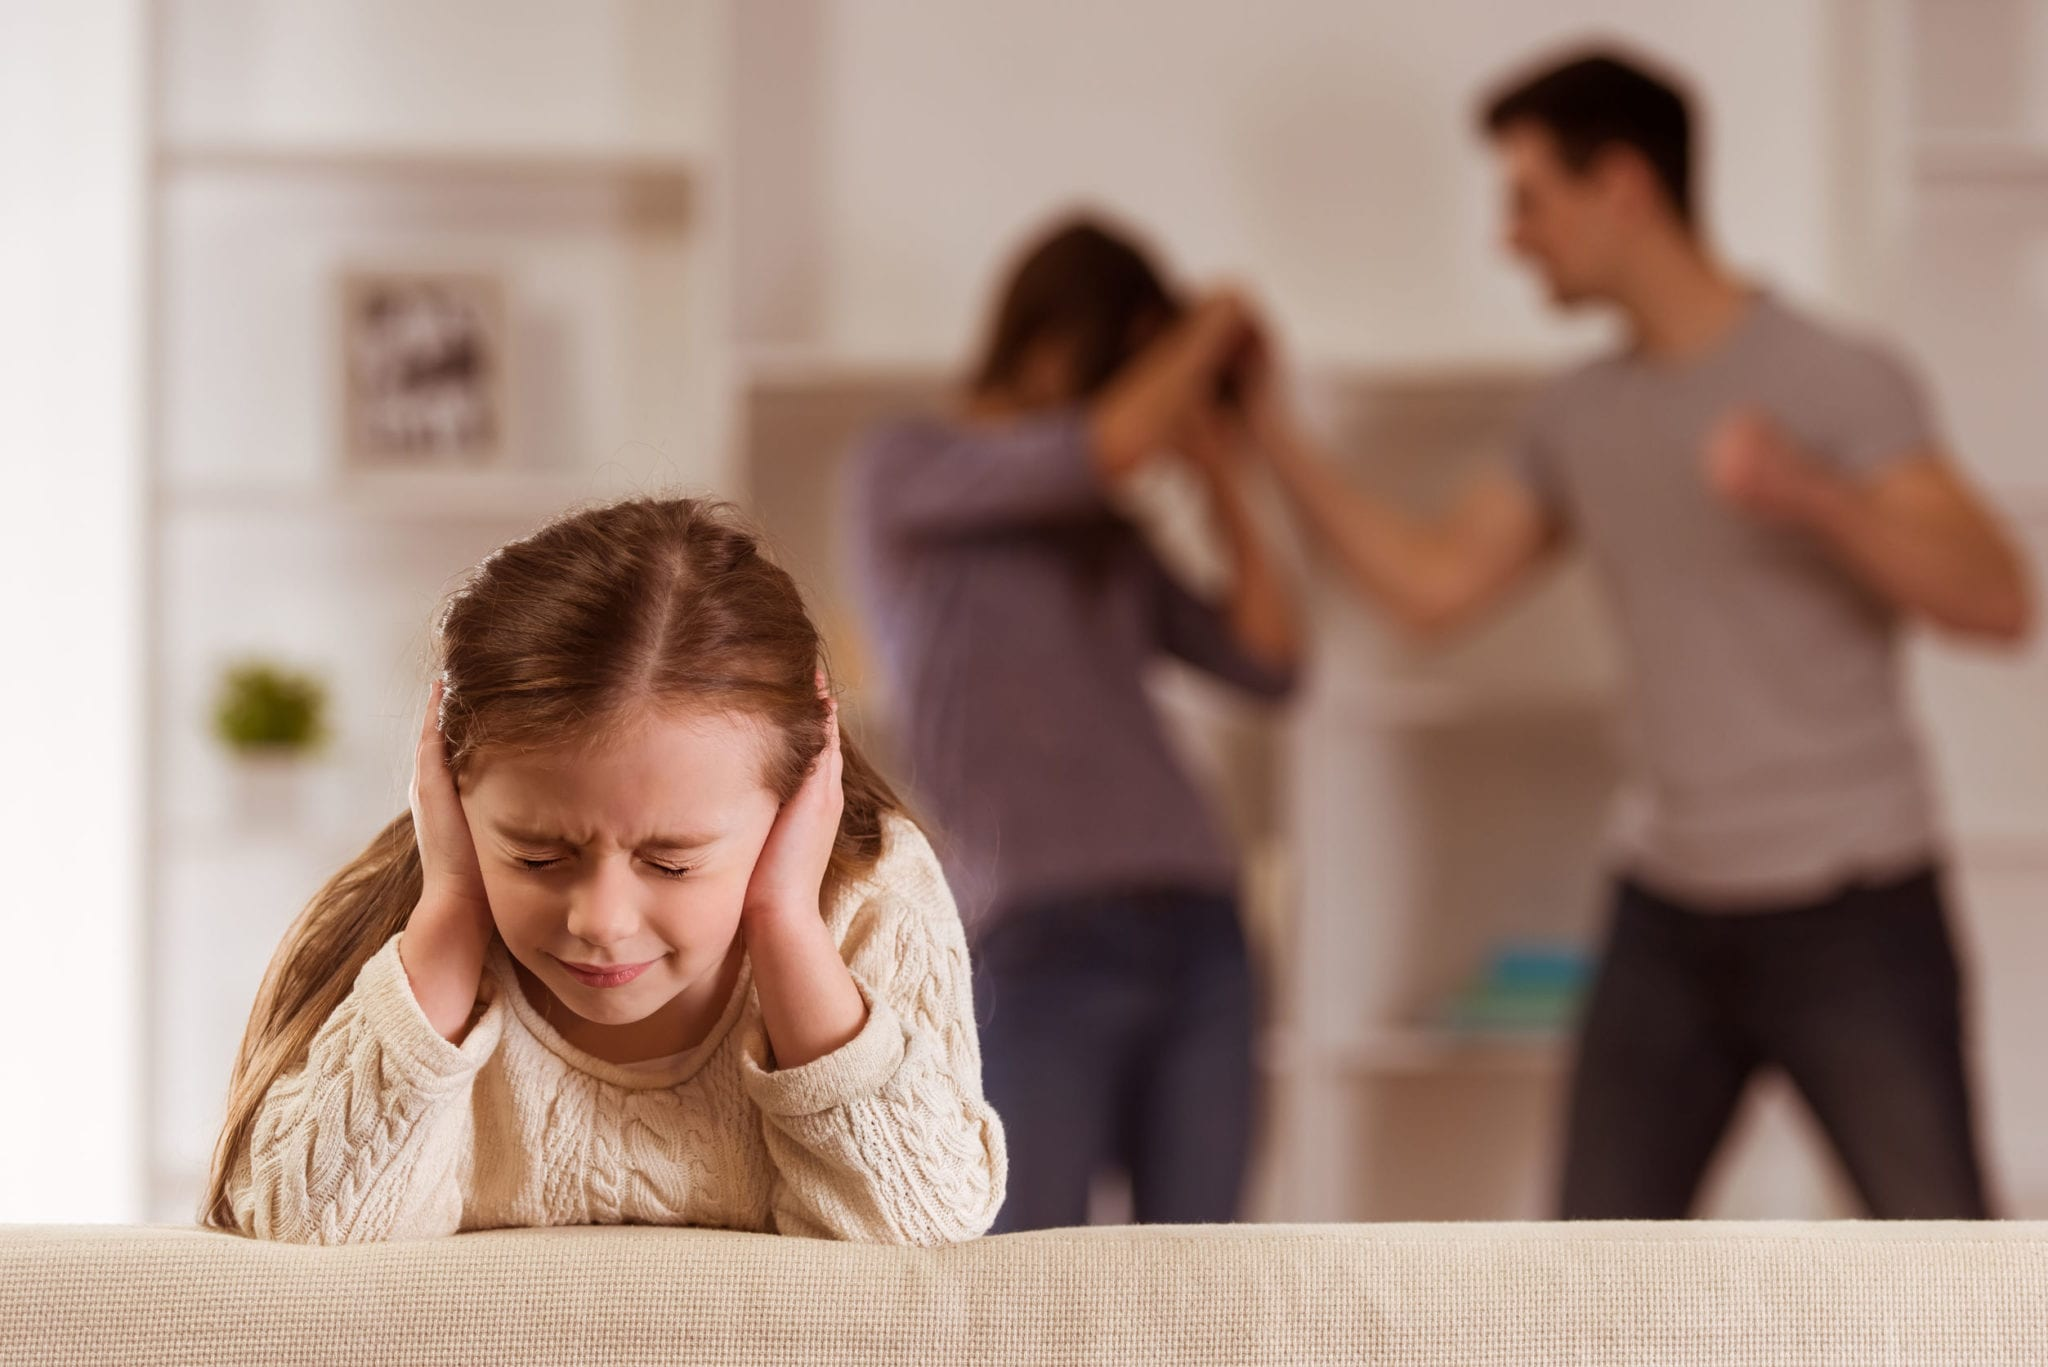 Texas Domestic Violence Charges - There Are Ways to Fight Back